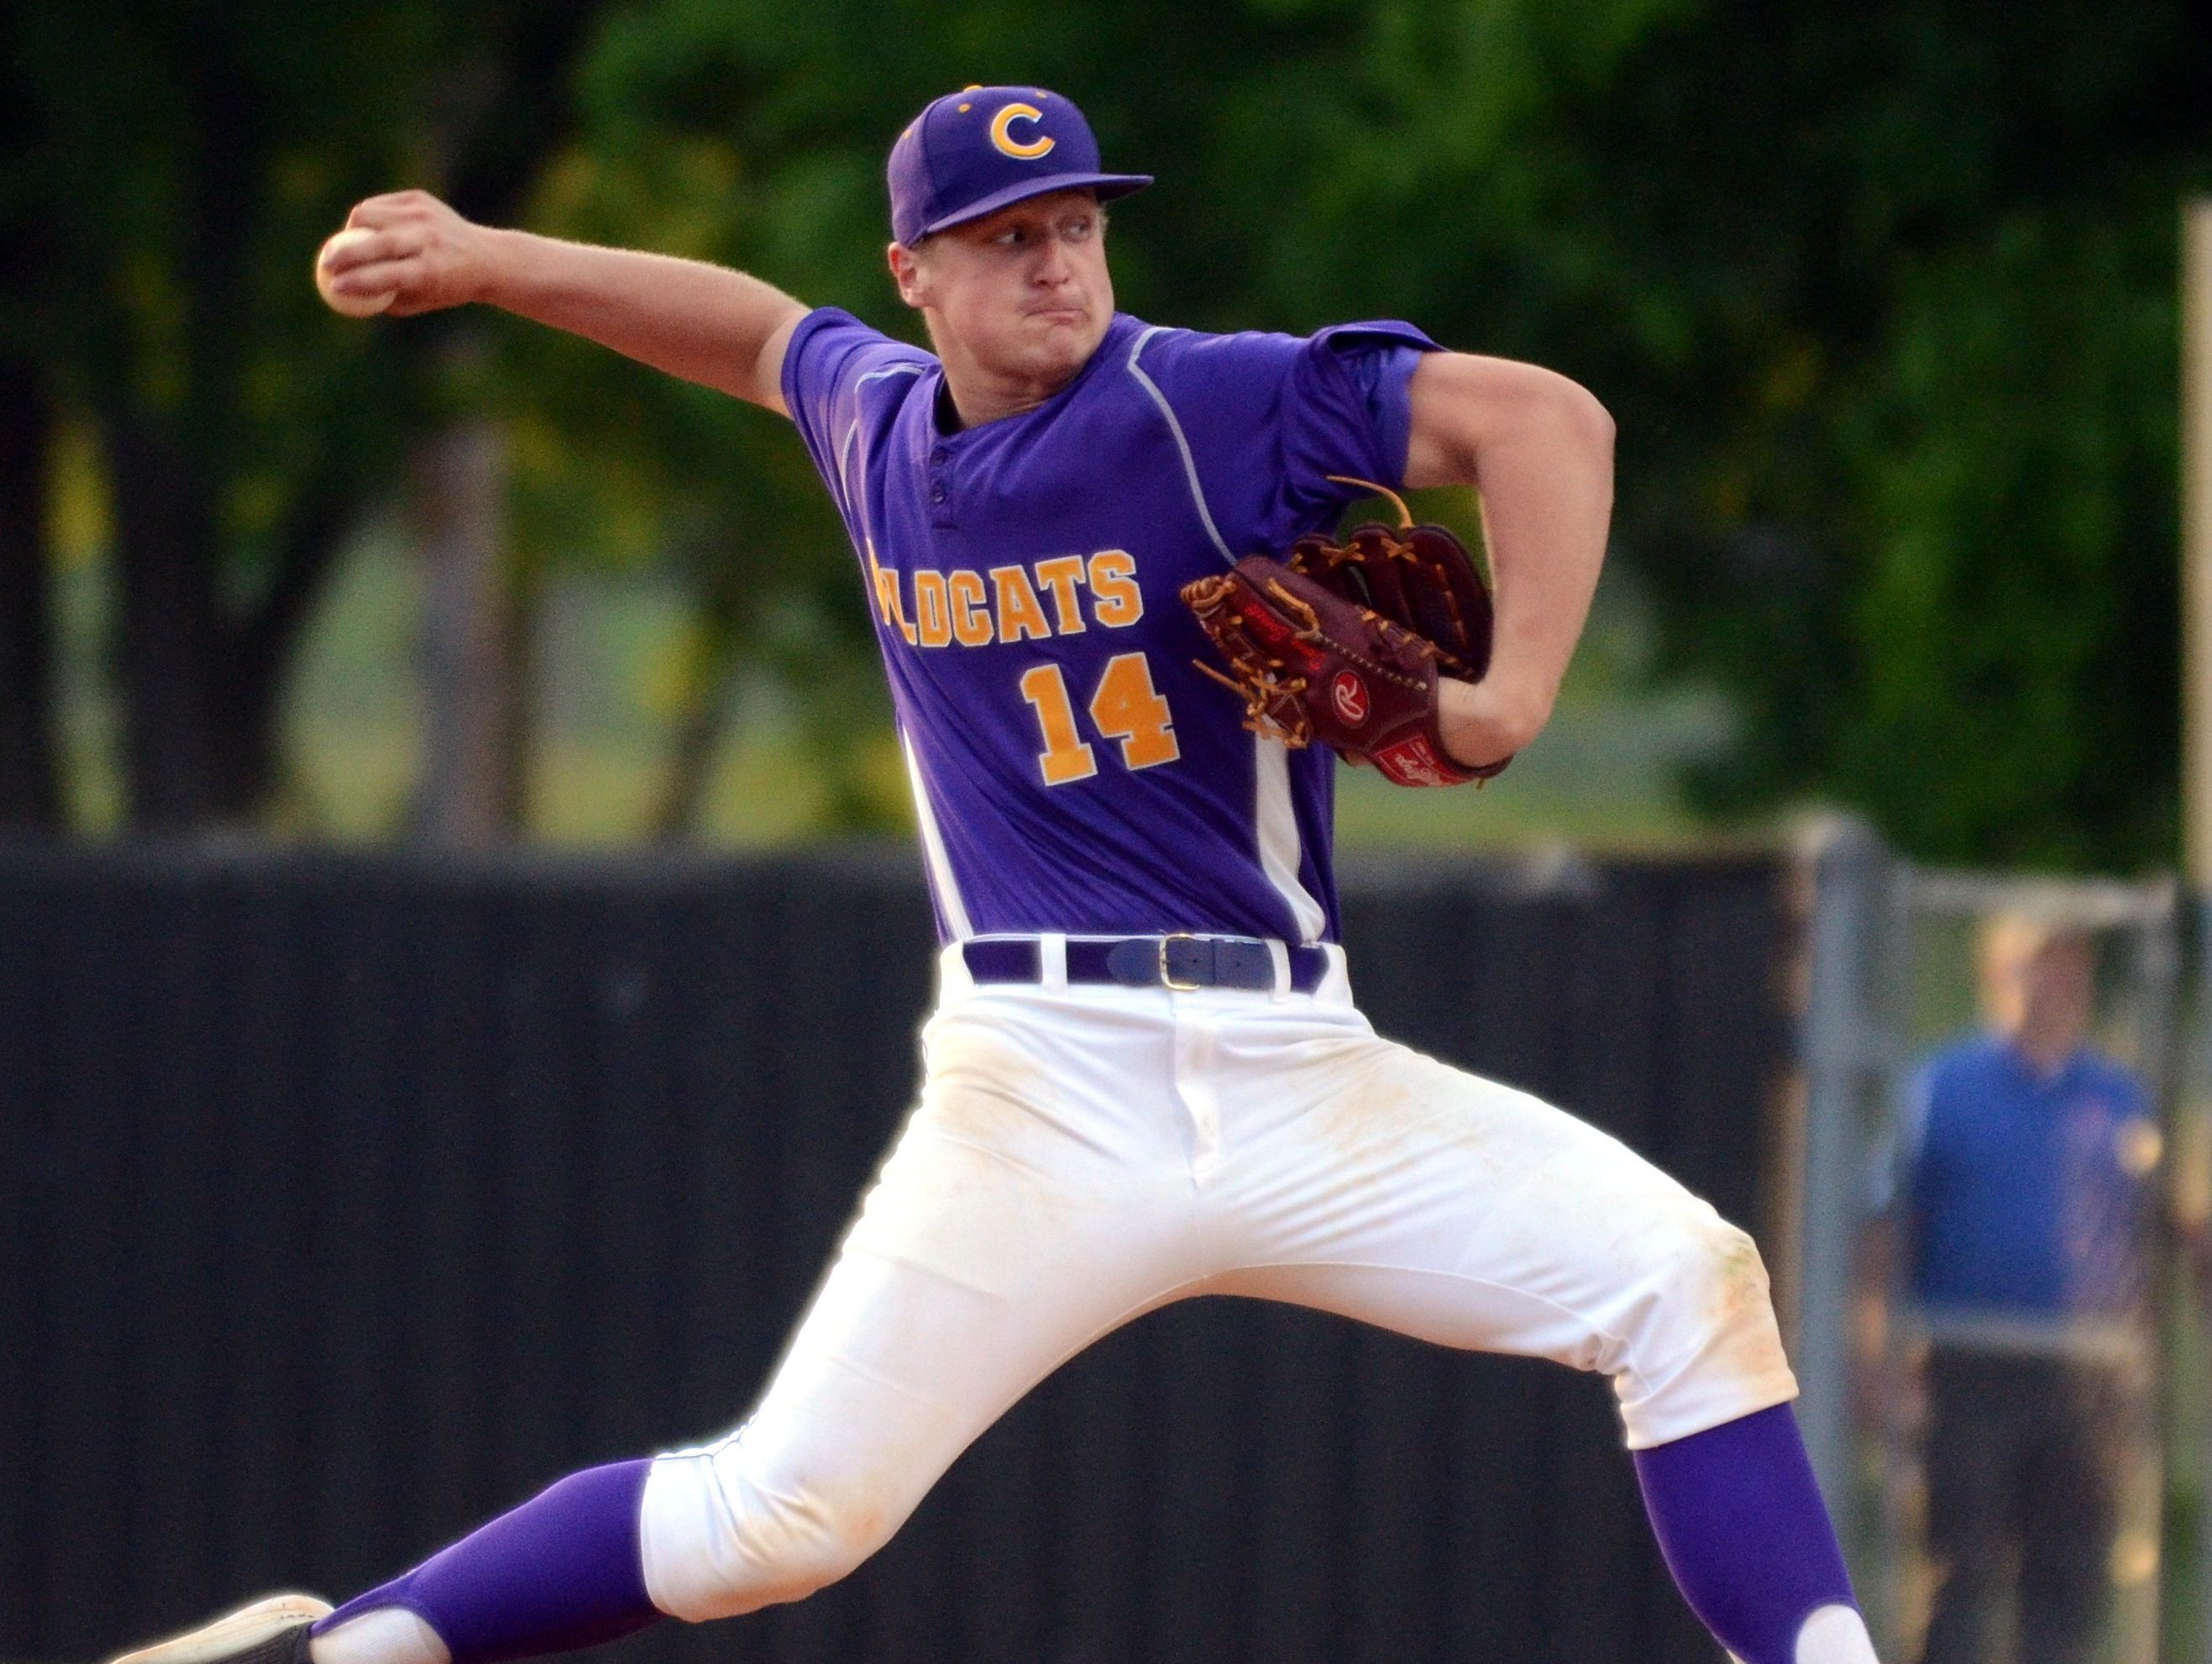 Clarksville High Donny Everett winds up to throw a pitch at home plate during a game earlier this season. Everett was named the Gatorade Baseball Player of the Year in Tennessee.